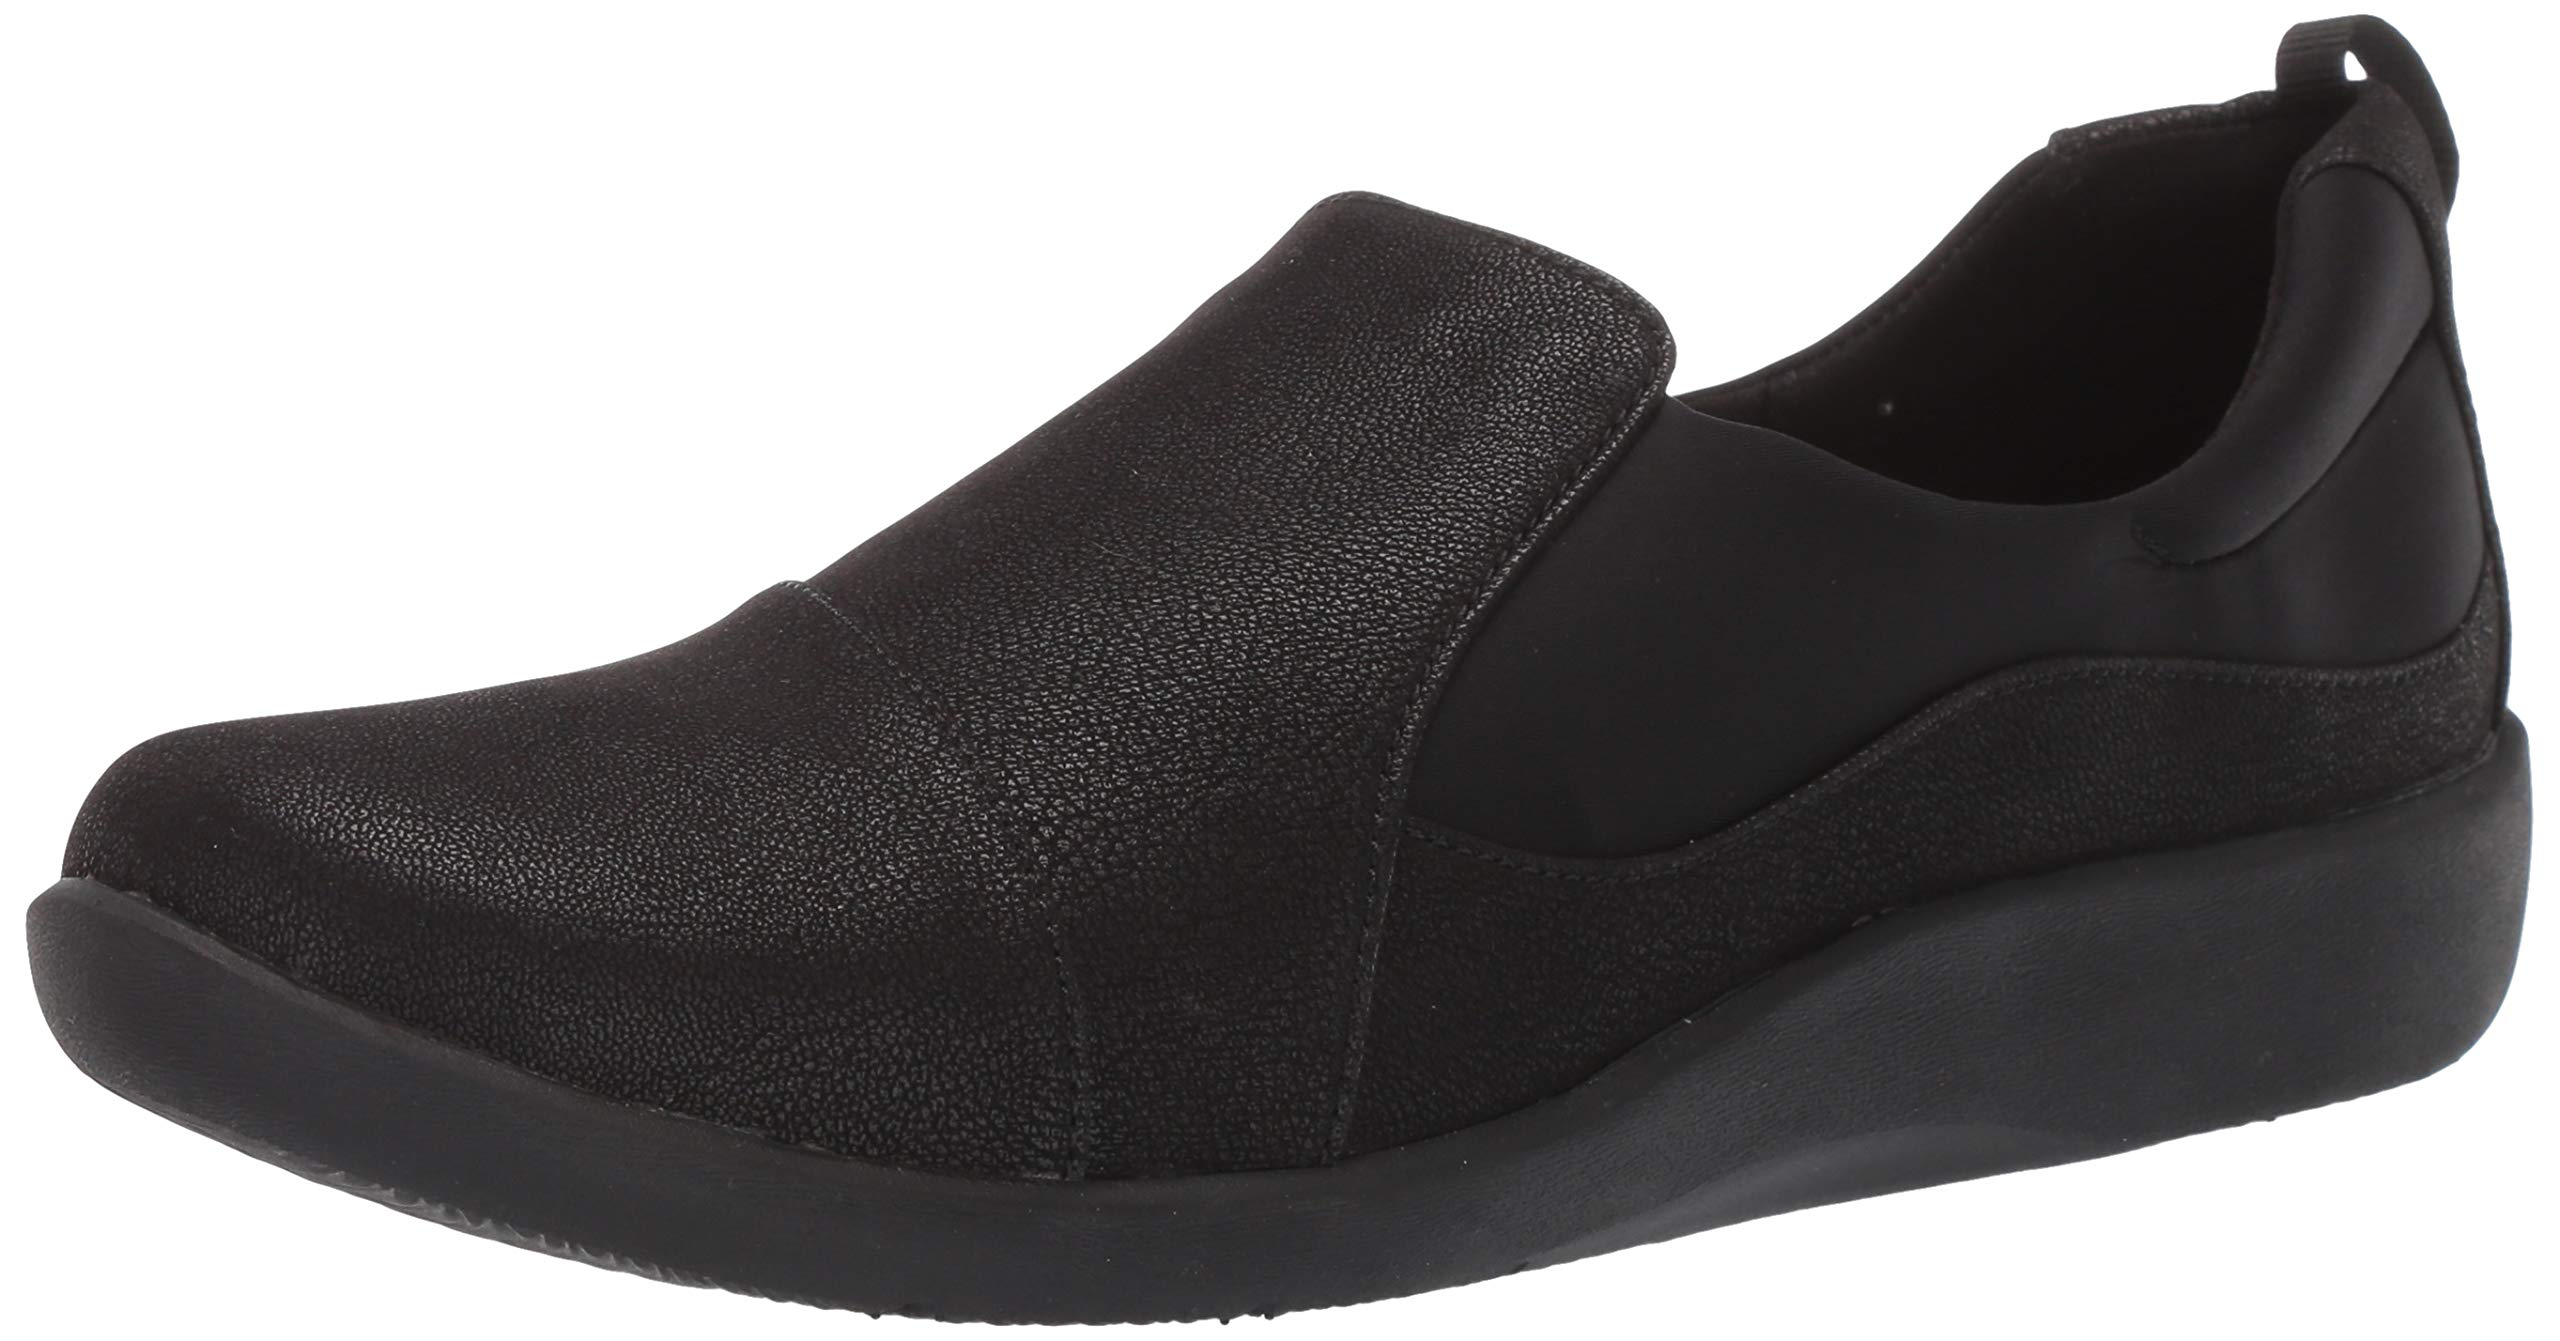 Clarks CloudSteppers Sillian Paz Synthetic